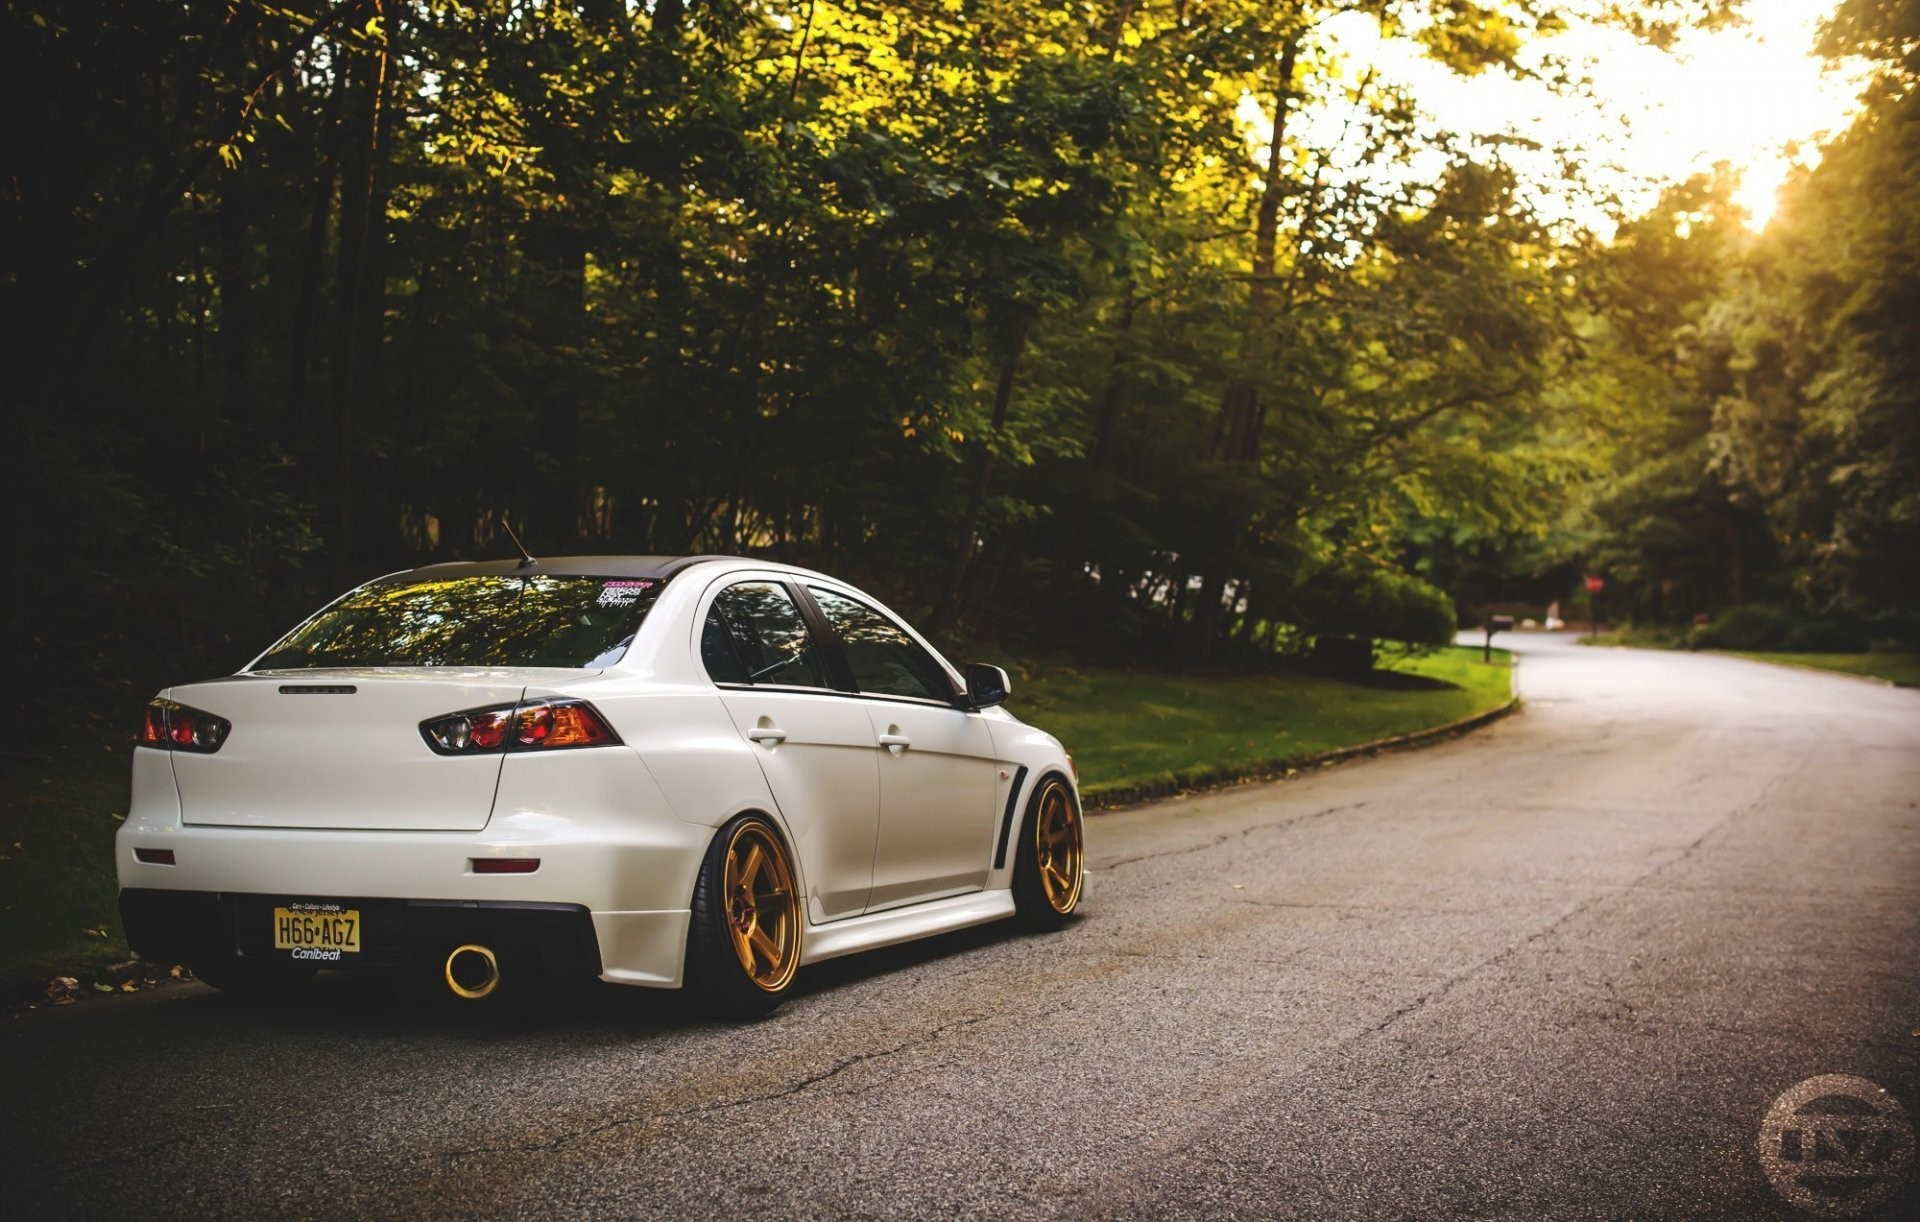 1920x1222 mitsubishi evolution evo x lancer gold road light